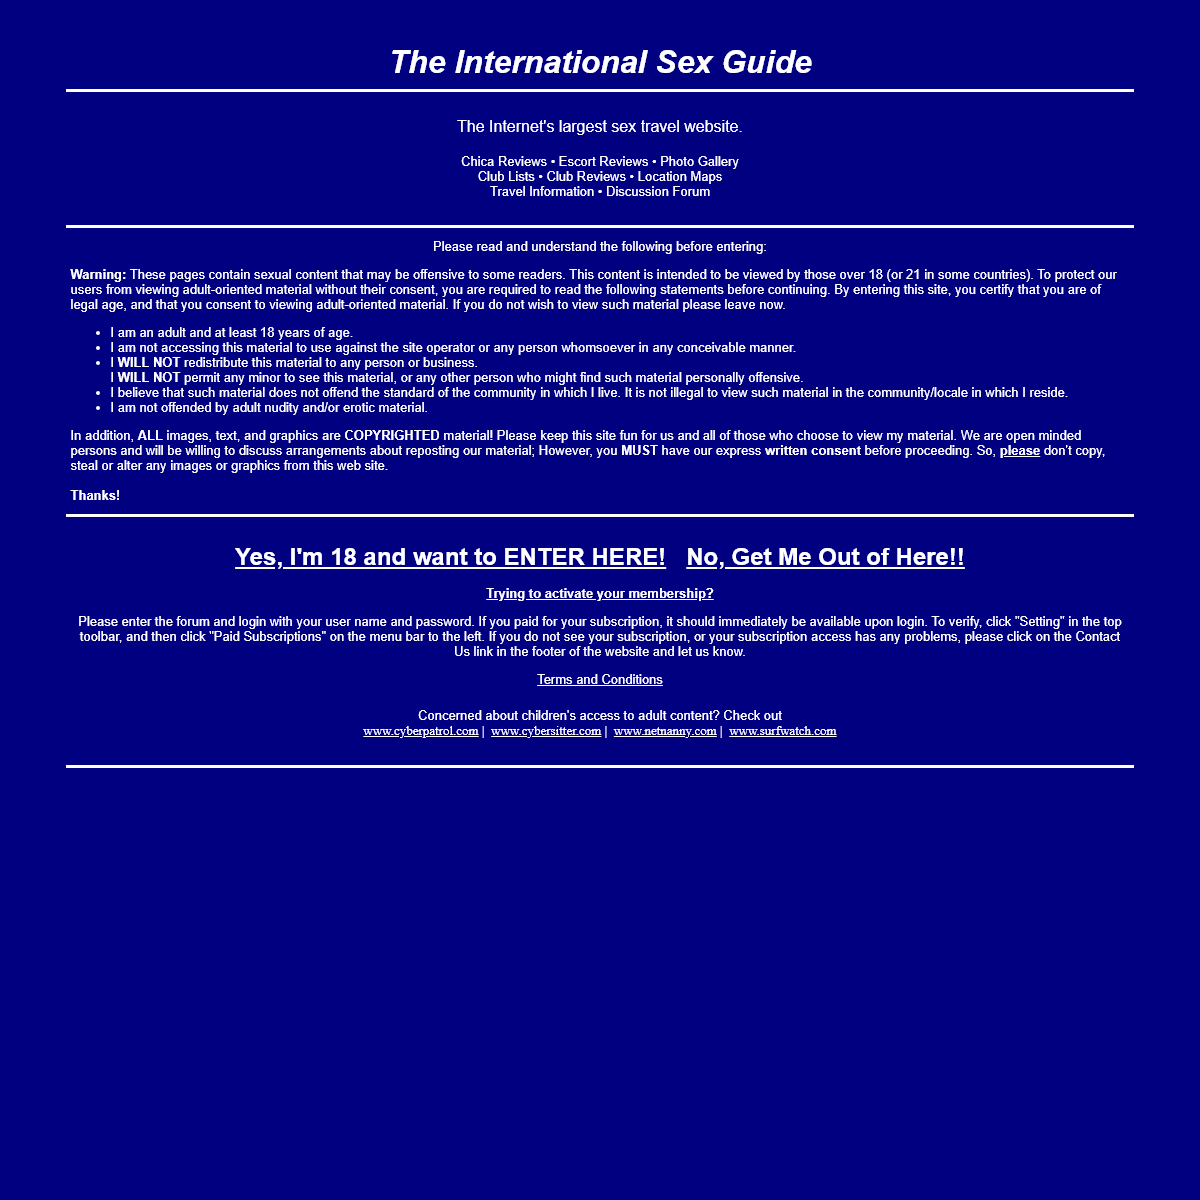 A complete backup of internationalsexguide.info